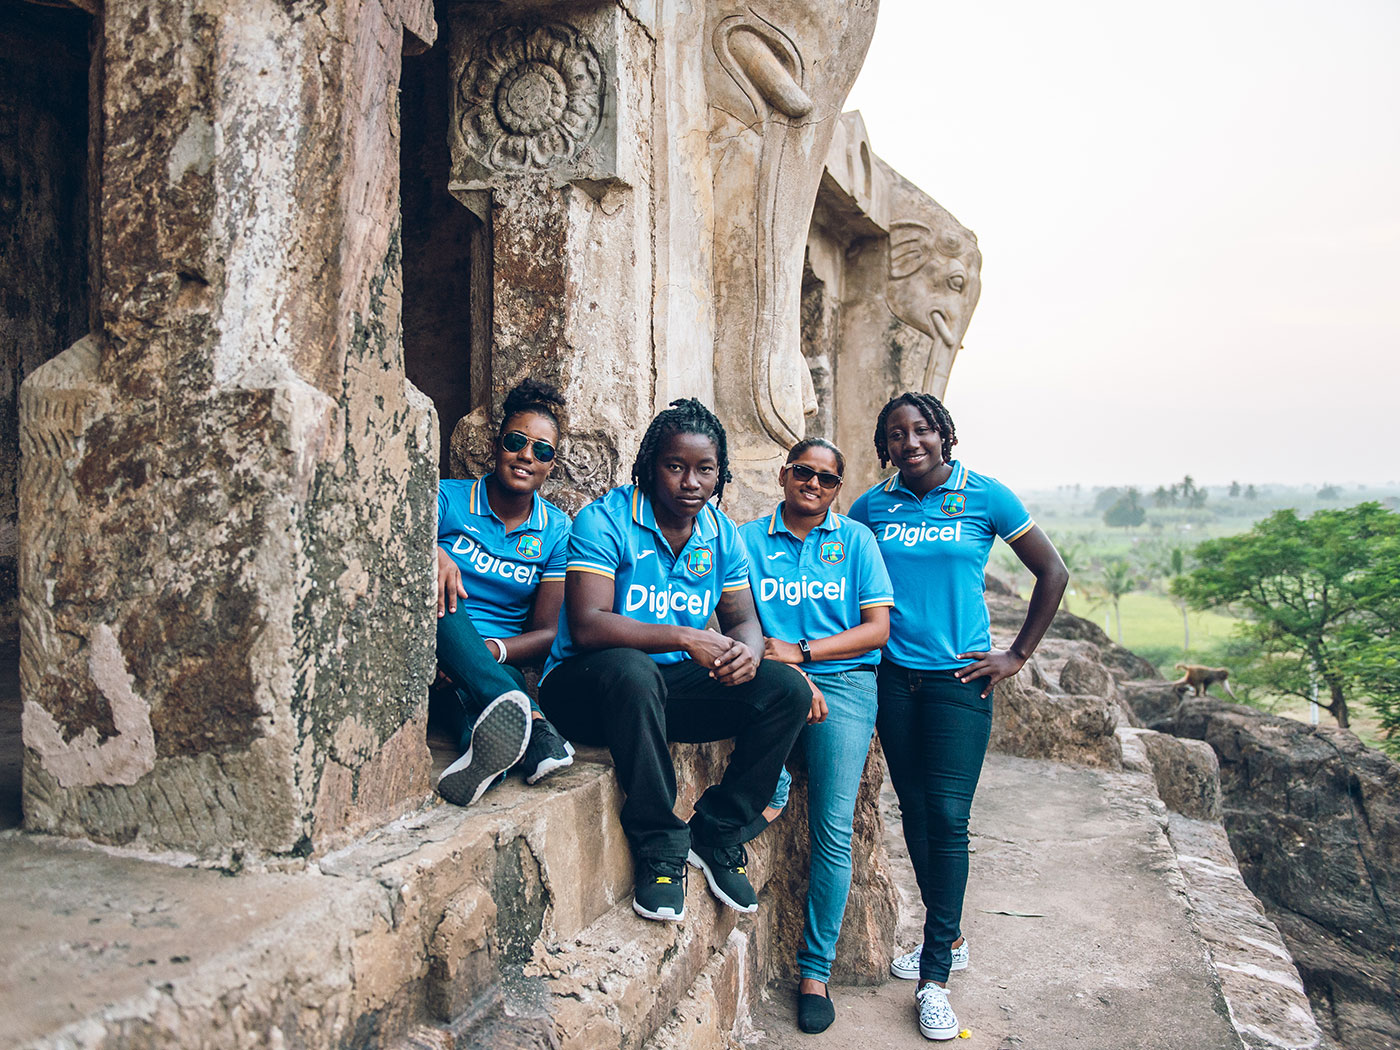 Hayley Matthews, Deandra Dottin, Anisa Mohammed and Stafanie Taylor pose for photographs in Vijaywada